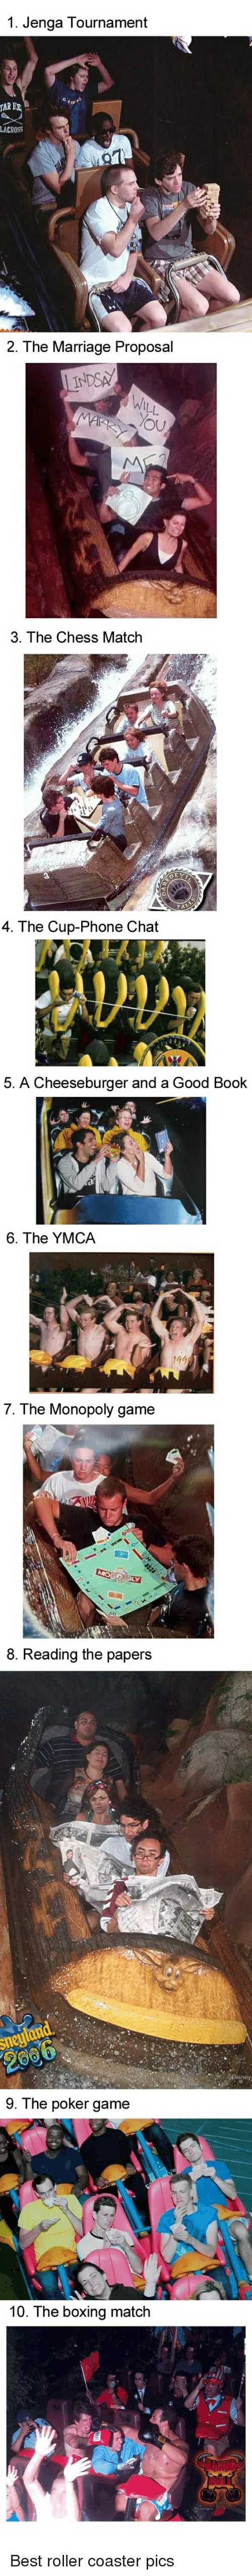 Boxing, Marriage, and Monopoly: 1. Jenga Tournament  2. The Marriage Proposal  3. The Chess Match  4. The Cup-Phone Chat  5. A Cheeseburger and a Good Book  6. The YMCA  7. The Monopoly game  8. Reading the papers  9. The poker game  10. The boxing match Best roller coaster pics